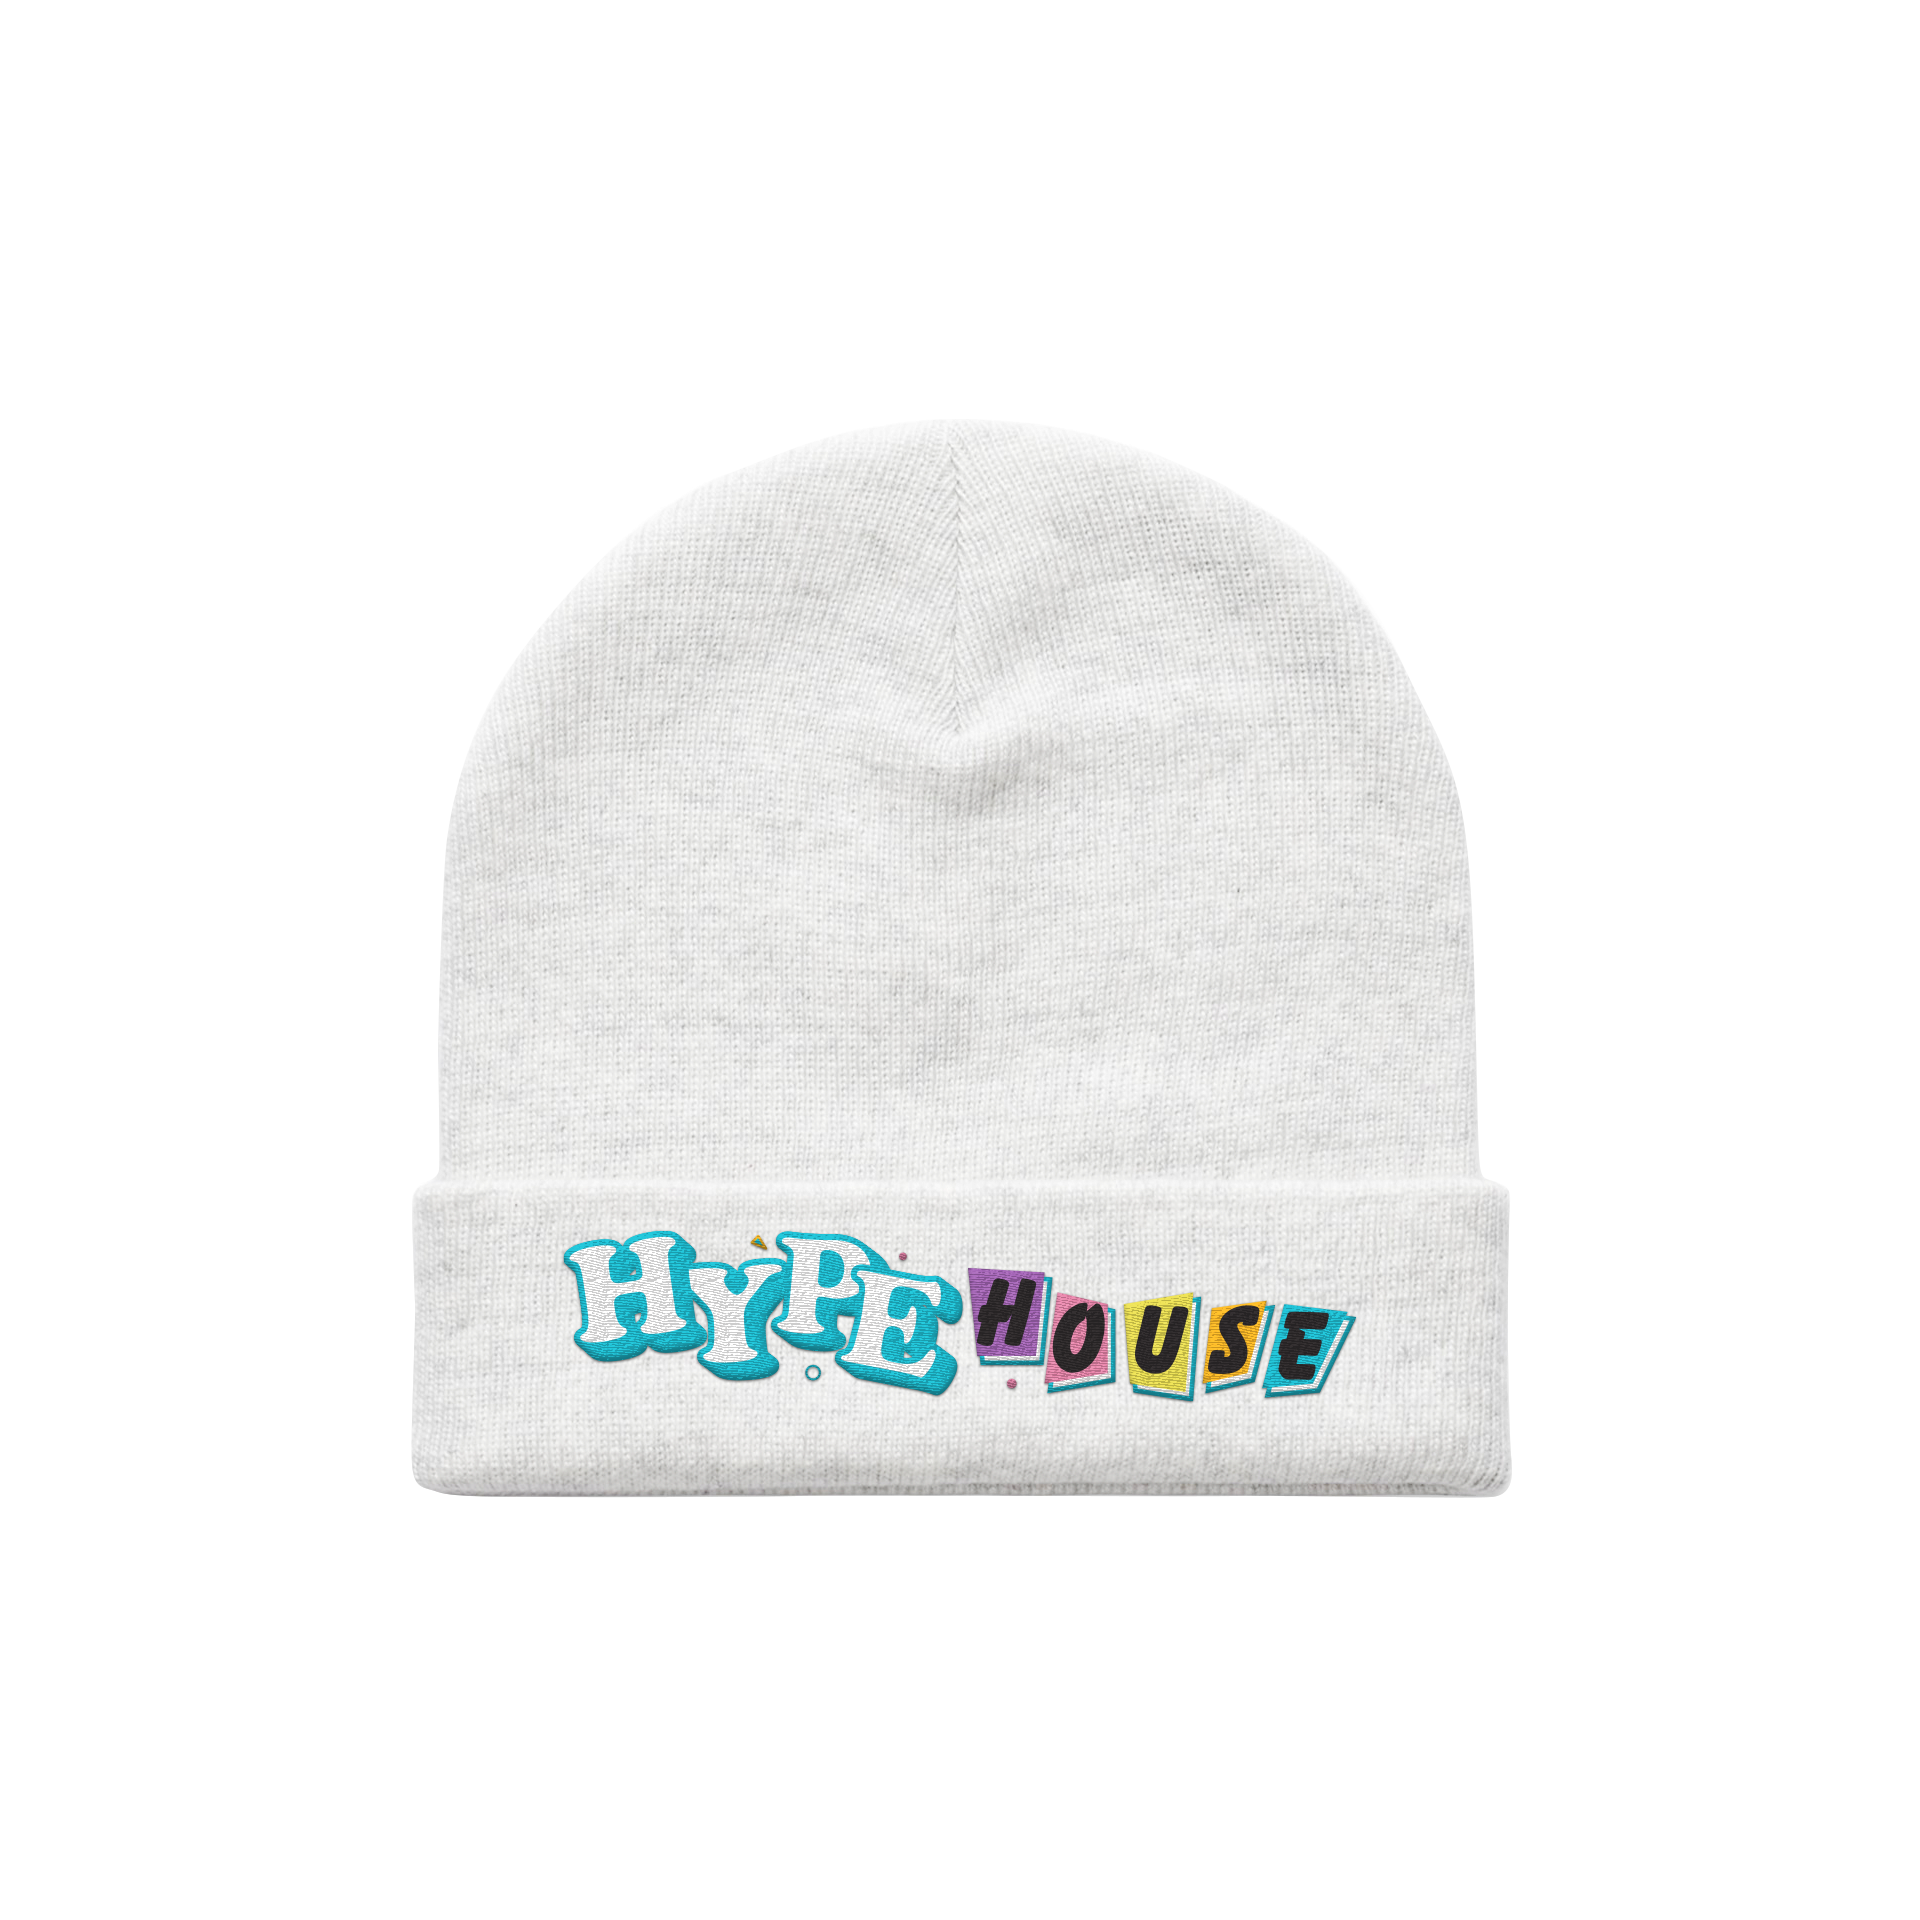 Full House White Beanie